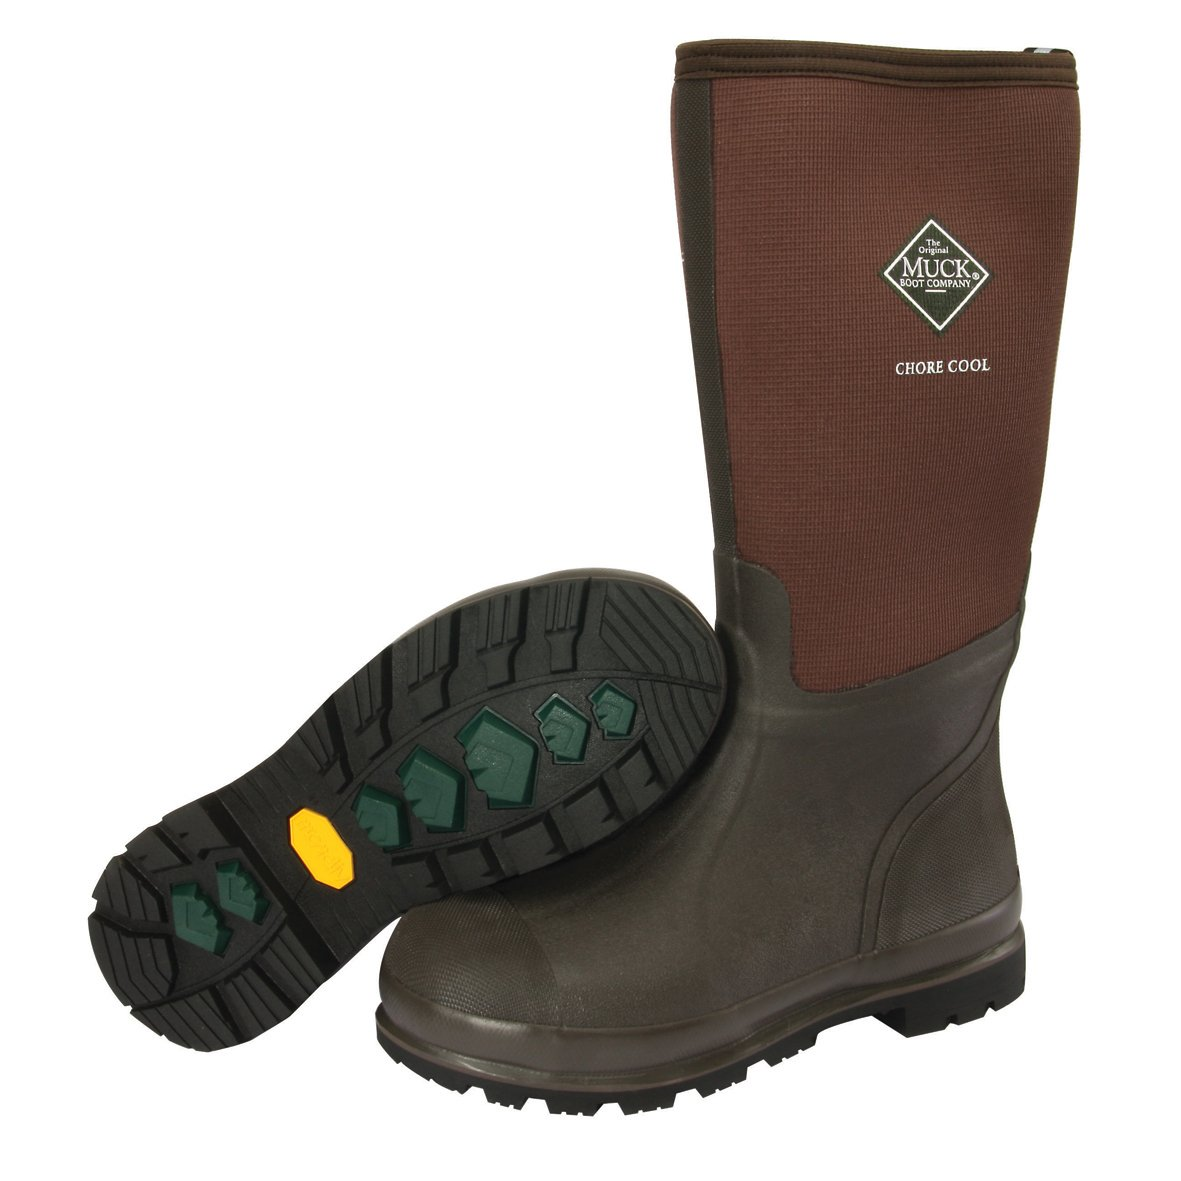 14c16e419c6 Muck Boots Chore Cool Soft Toe Warm Weather Men's Rubber Work Boot